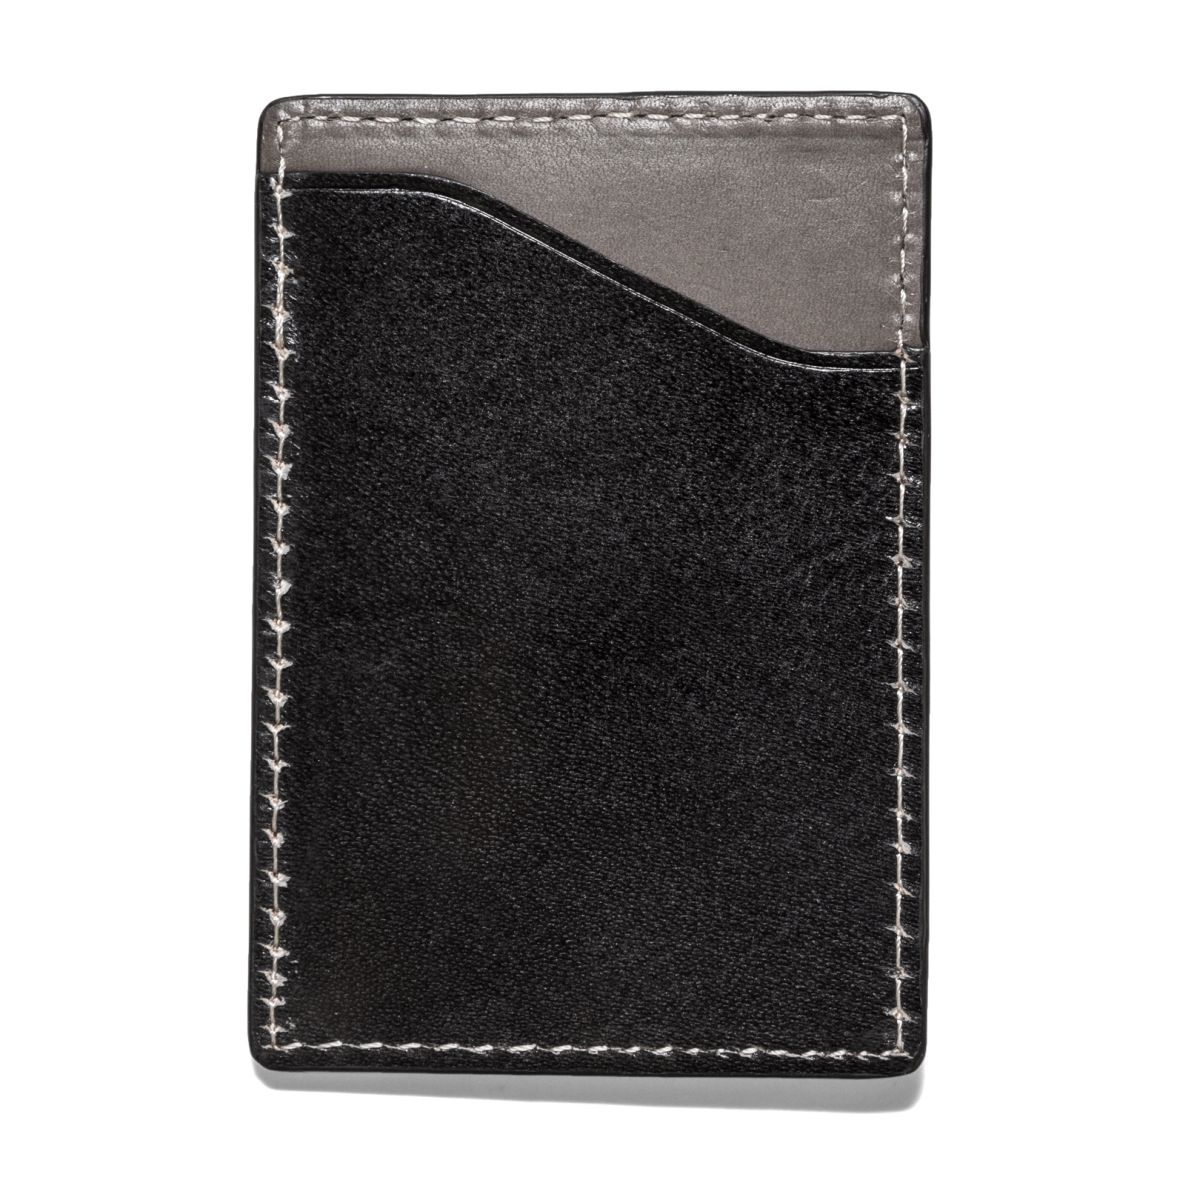 J.FOLD FLAT STASH Leather Wallet - Black